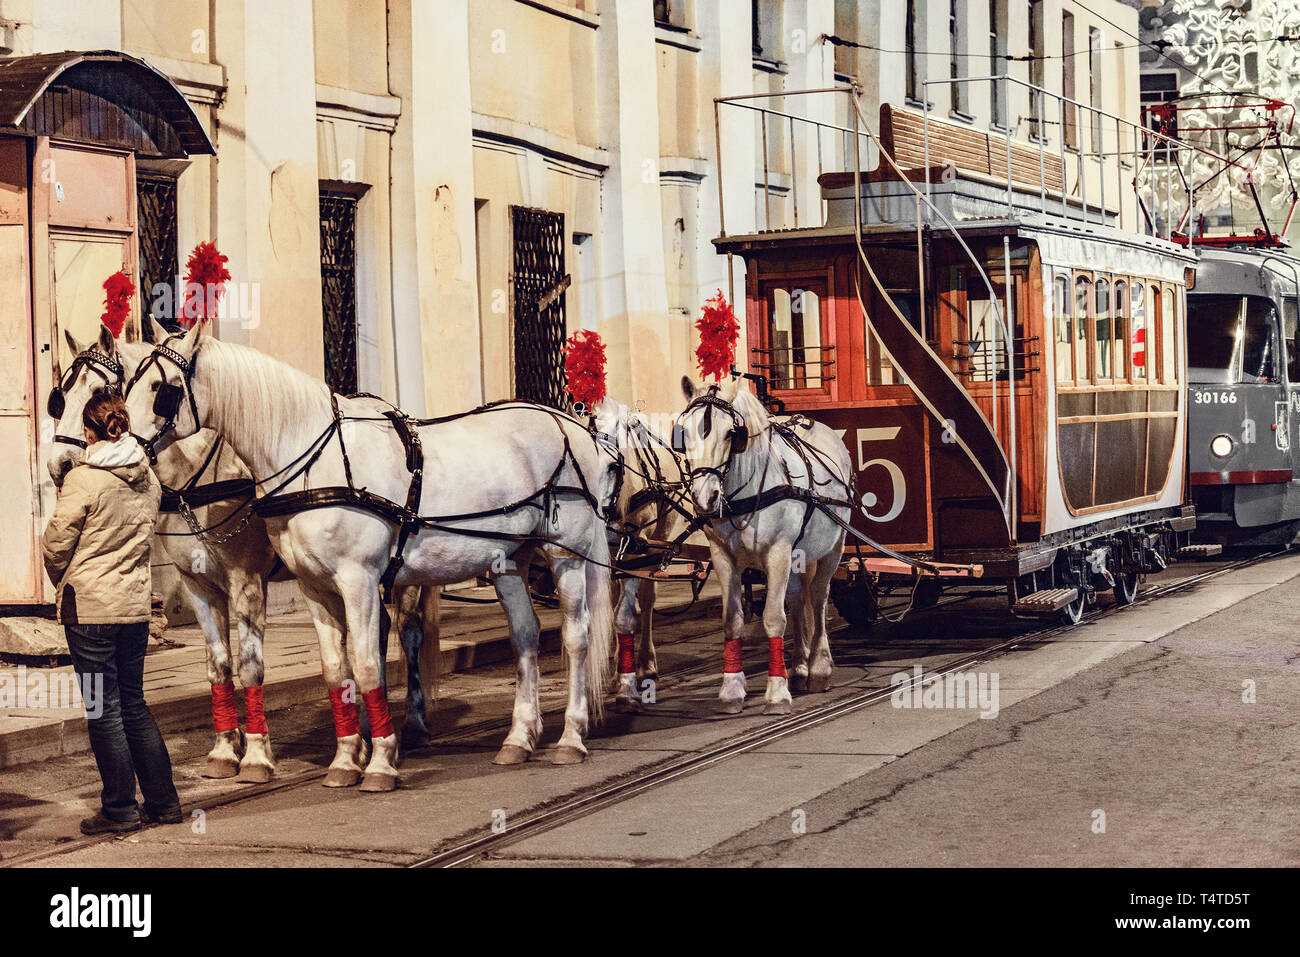 Horses and passenger vintage carriage on the town street in the historical city center before the repetition of traditional trams parade. Stock Photo